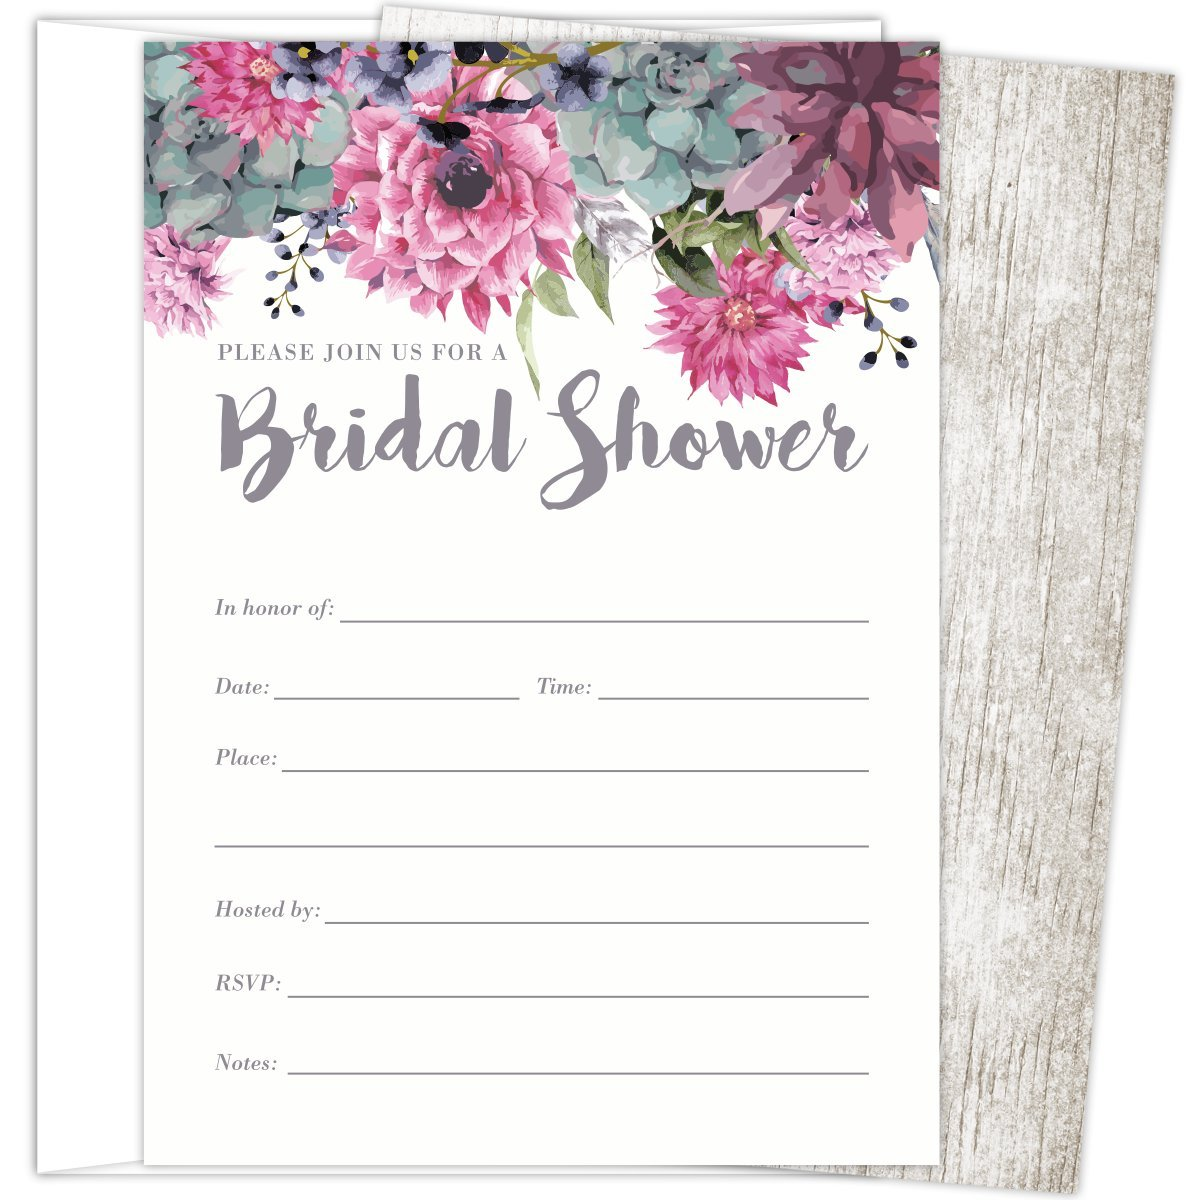 Koko Paper Co Bridal Shower Invitations Set of 25 Cards and Envelopes, Fill-In Style Vintage Rustic Design with Pink, Grey, Blue and Purple Watercolor Florals. Printed on Heavy 140lb Card Stock. by Koko Paper Co